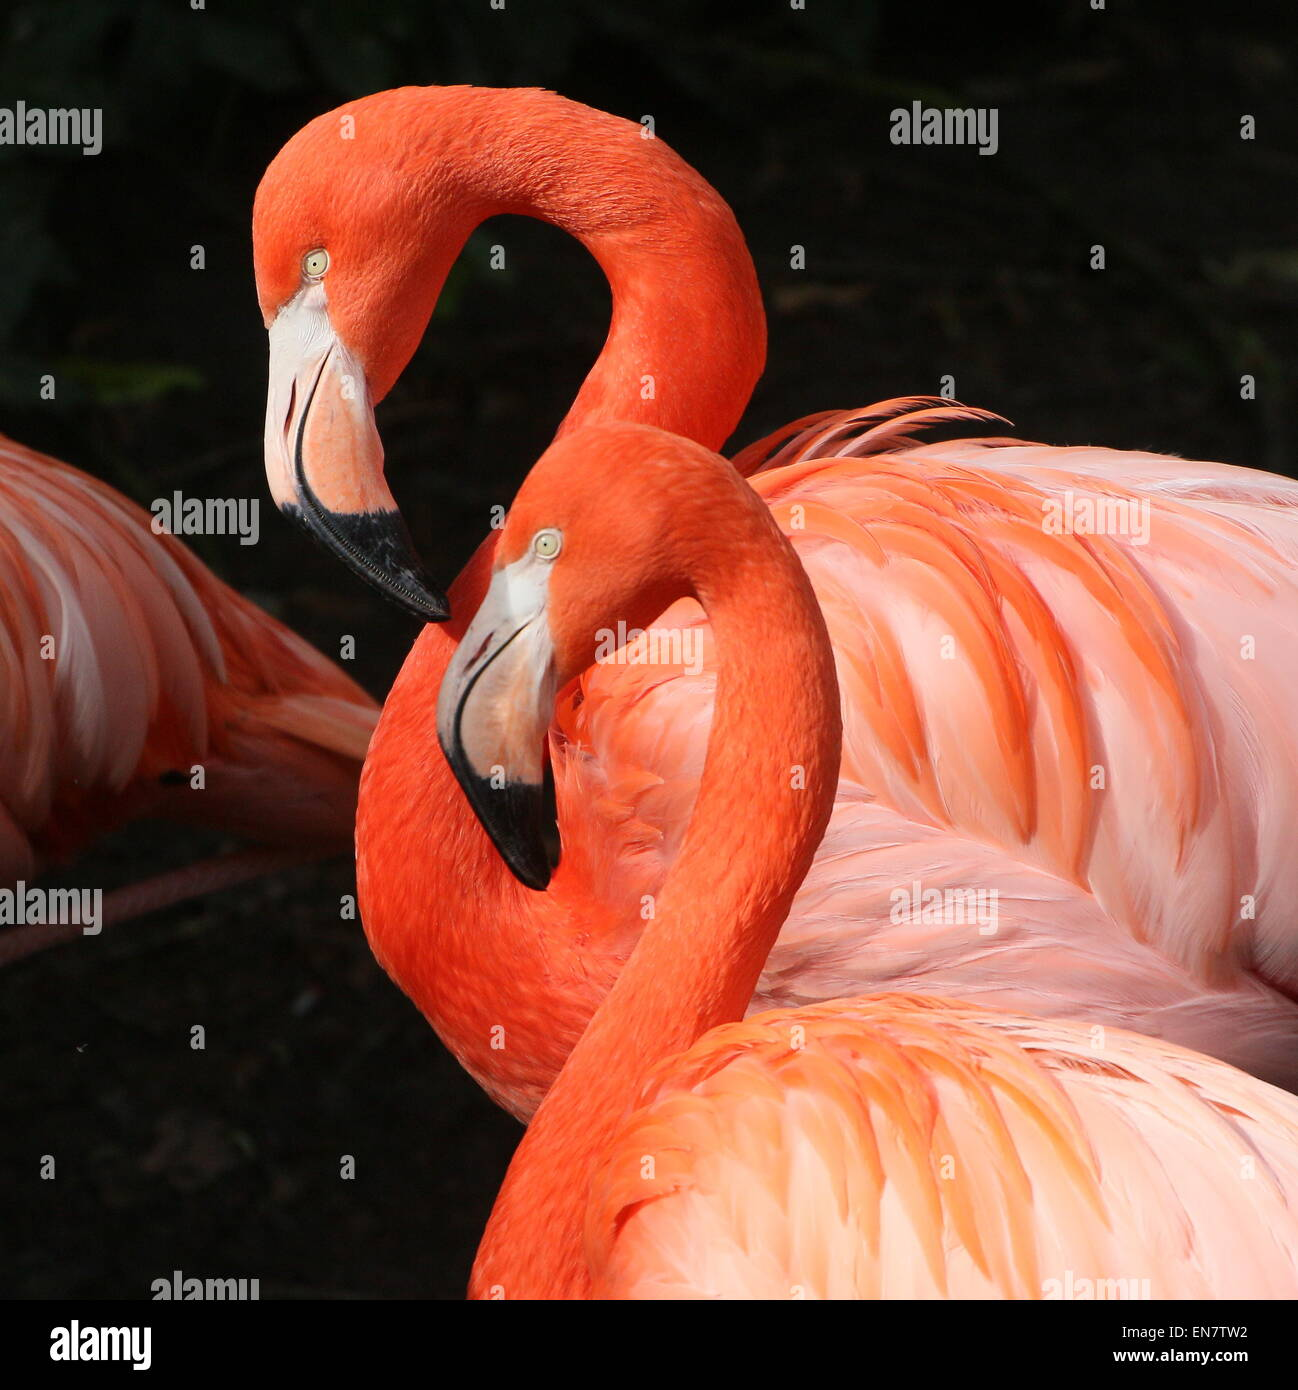 Double portrait of two American or Caribbean flamingos ( Phoenicopterus ruber), closeup of the head - Stock Image